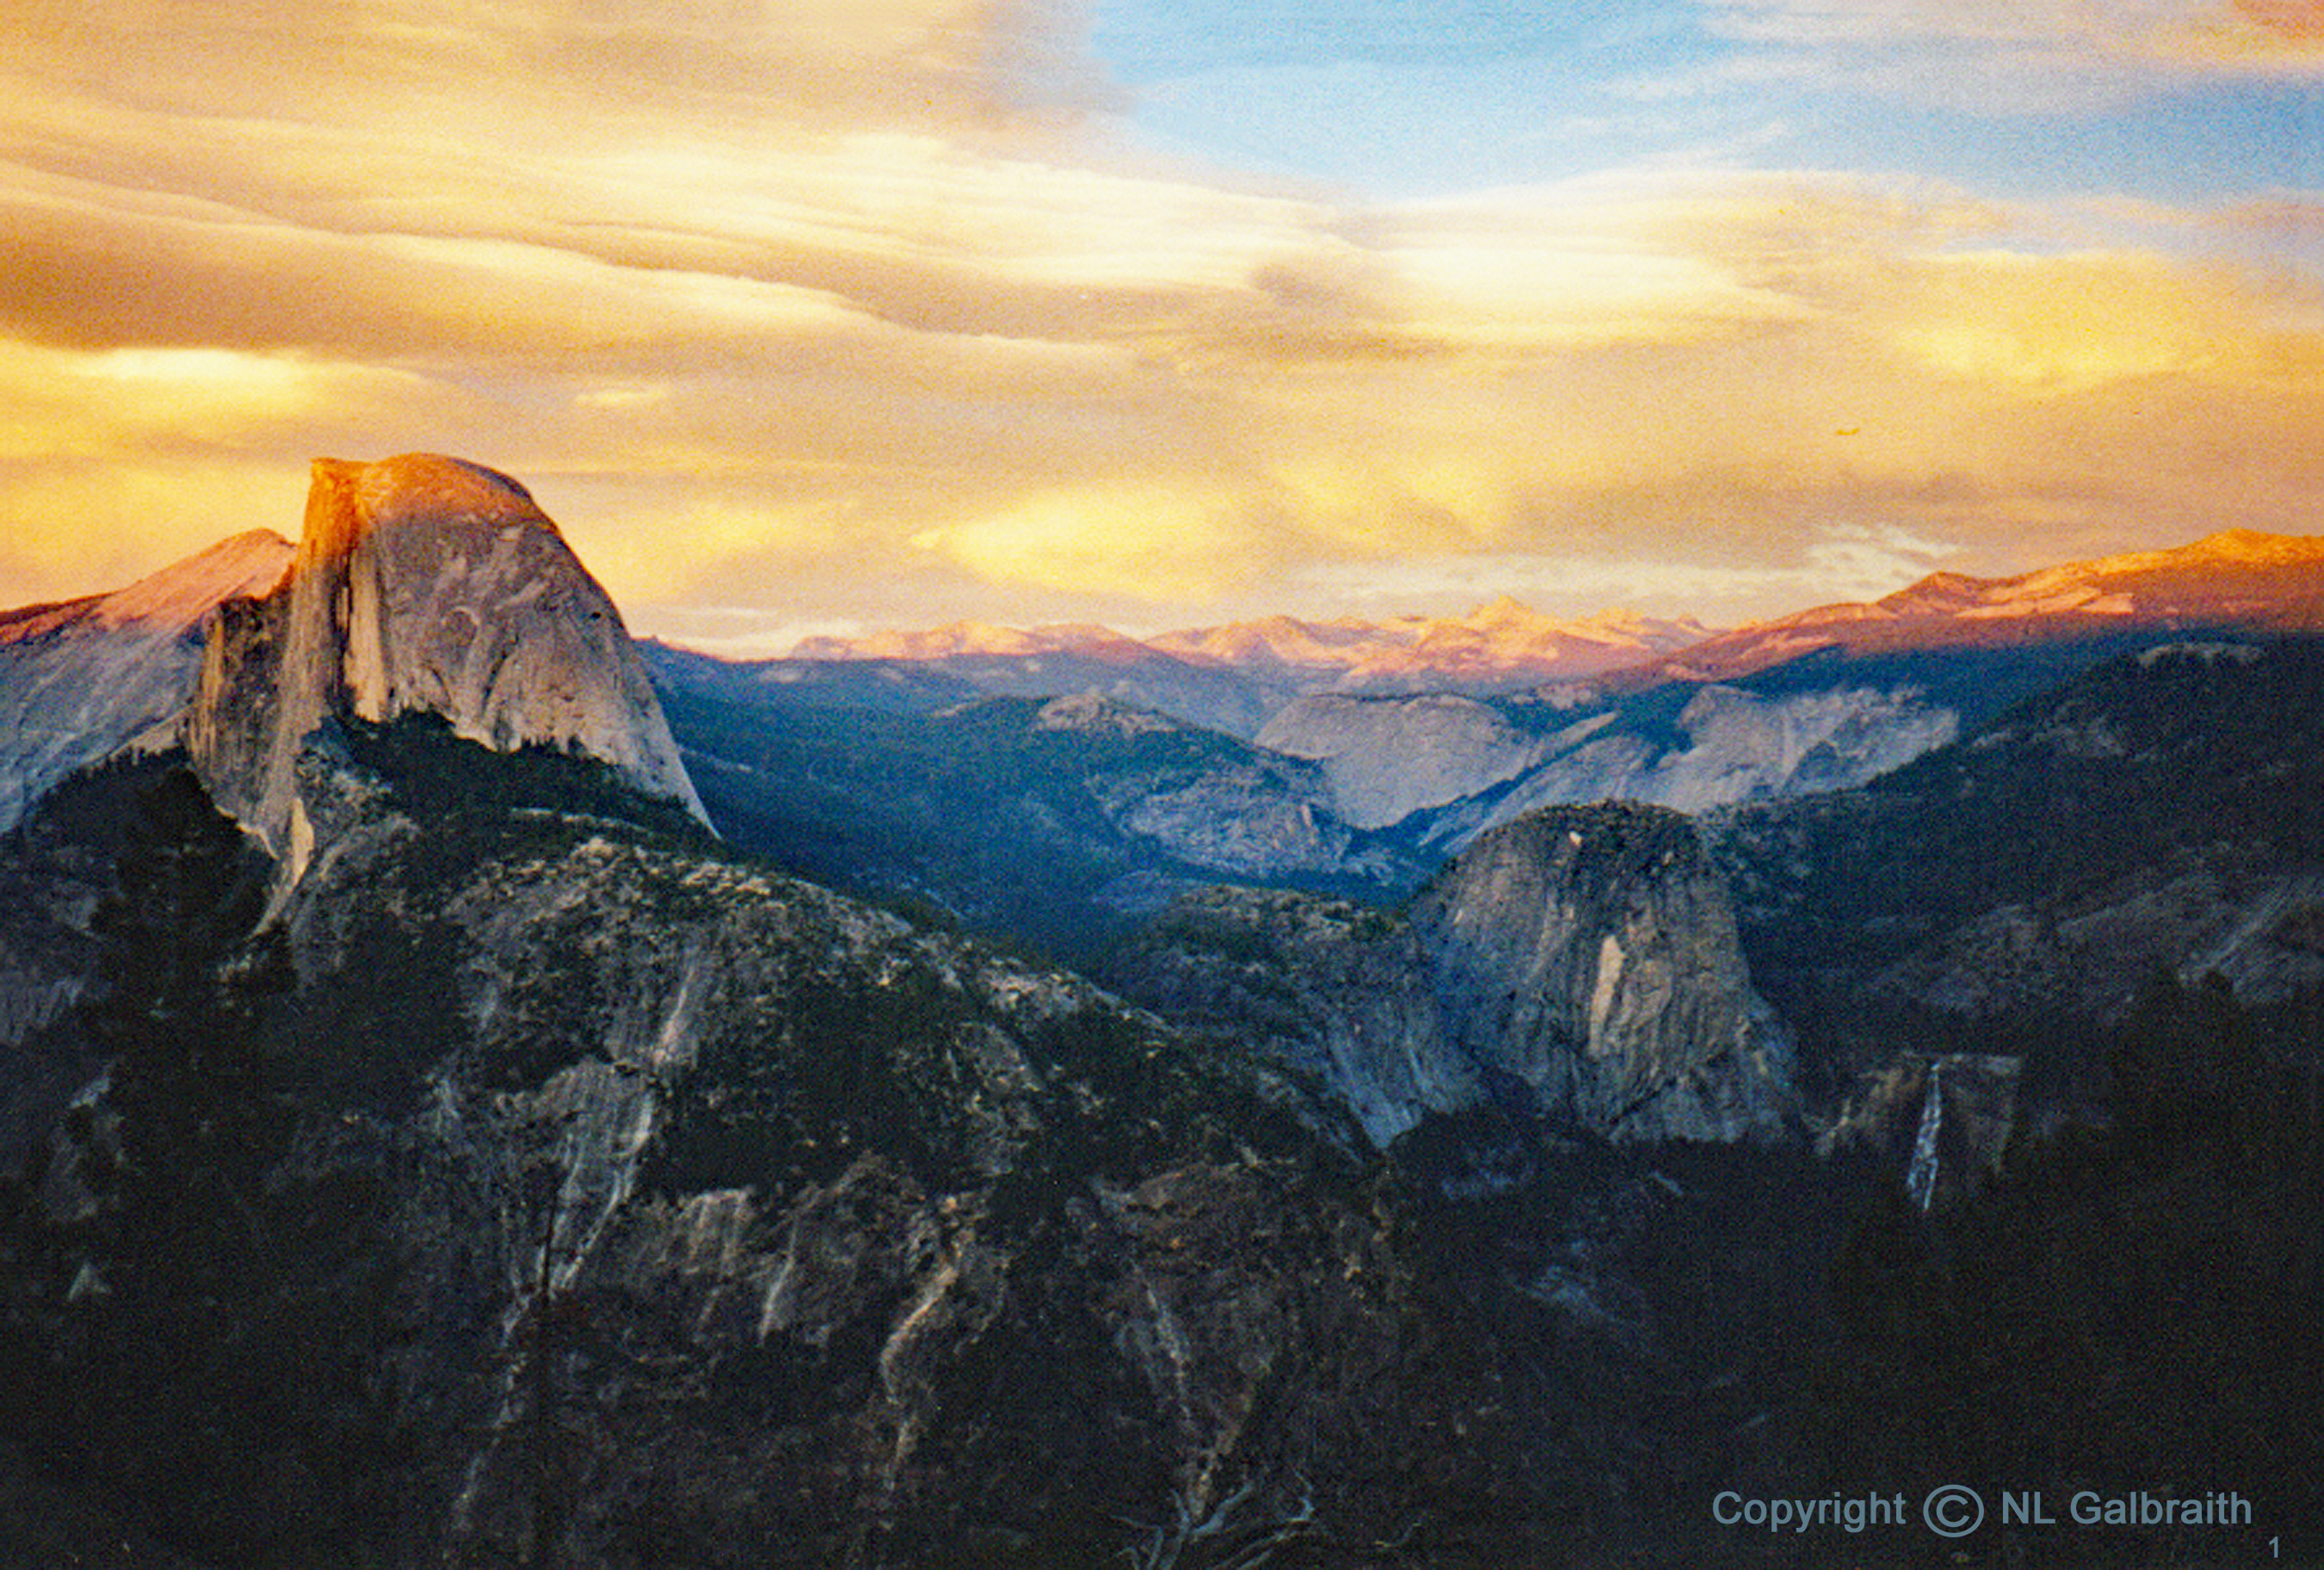 Support our National Parks, and visit often.